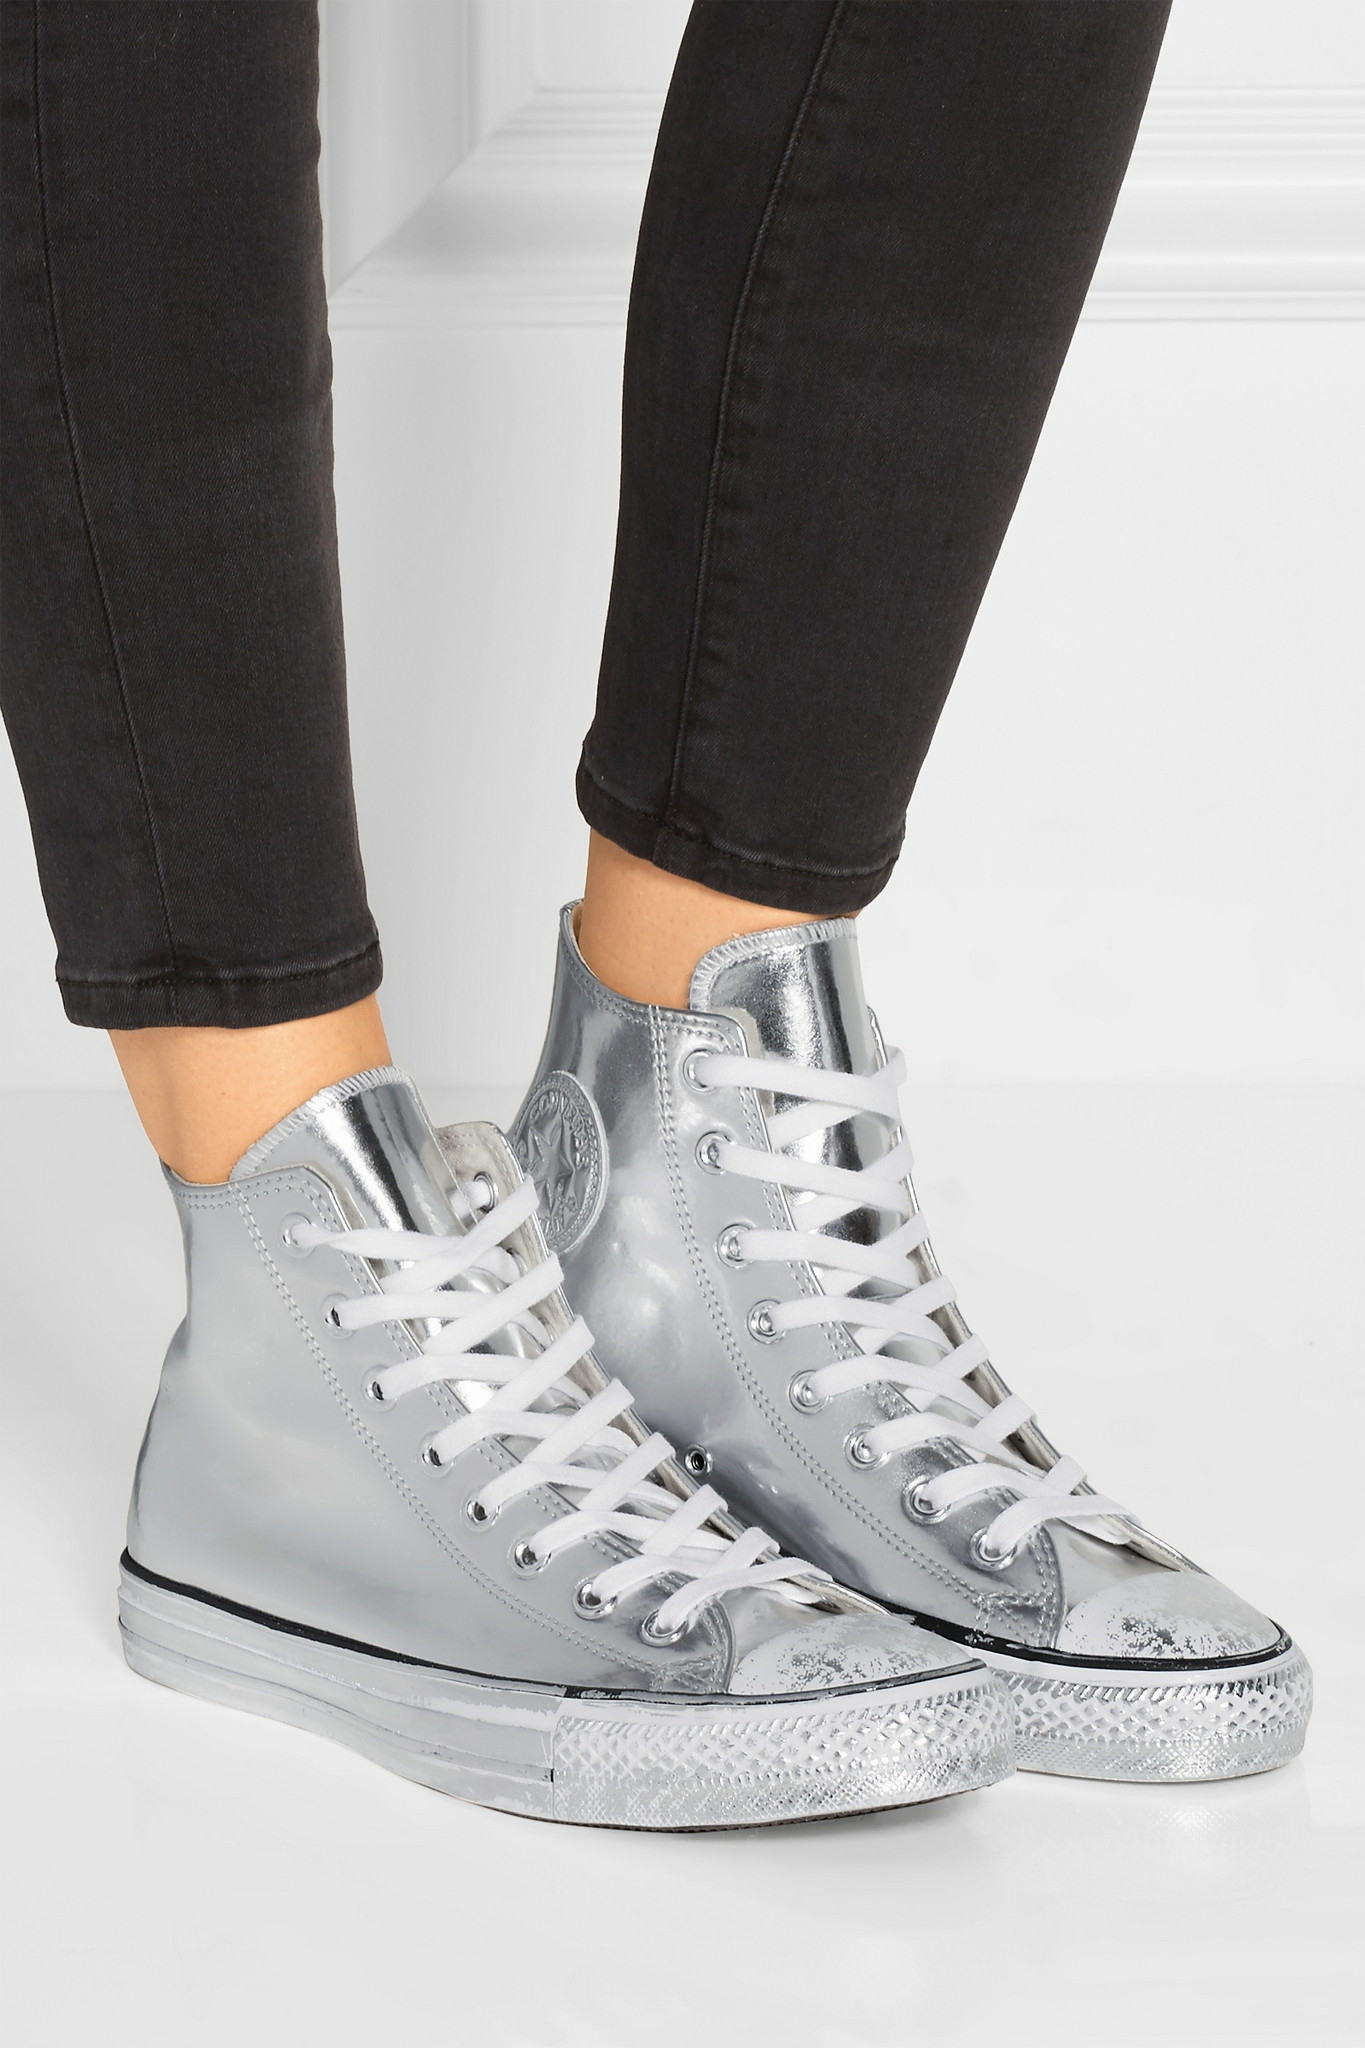 21bf92190c96 Lyst - Converse Chuck Taylor All Star Chrome Metallic Leather High ...